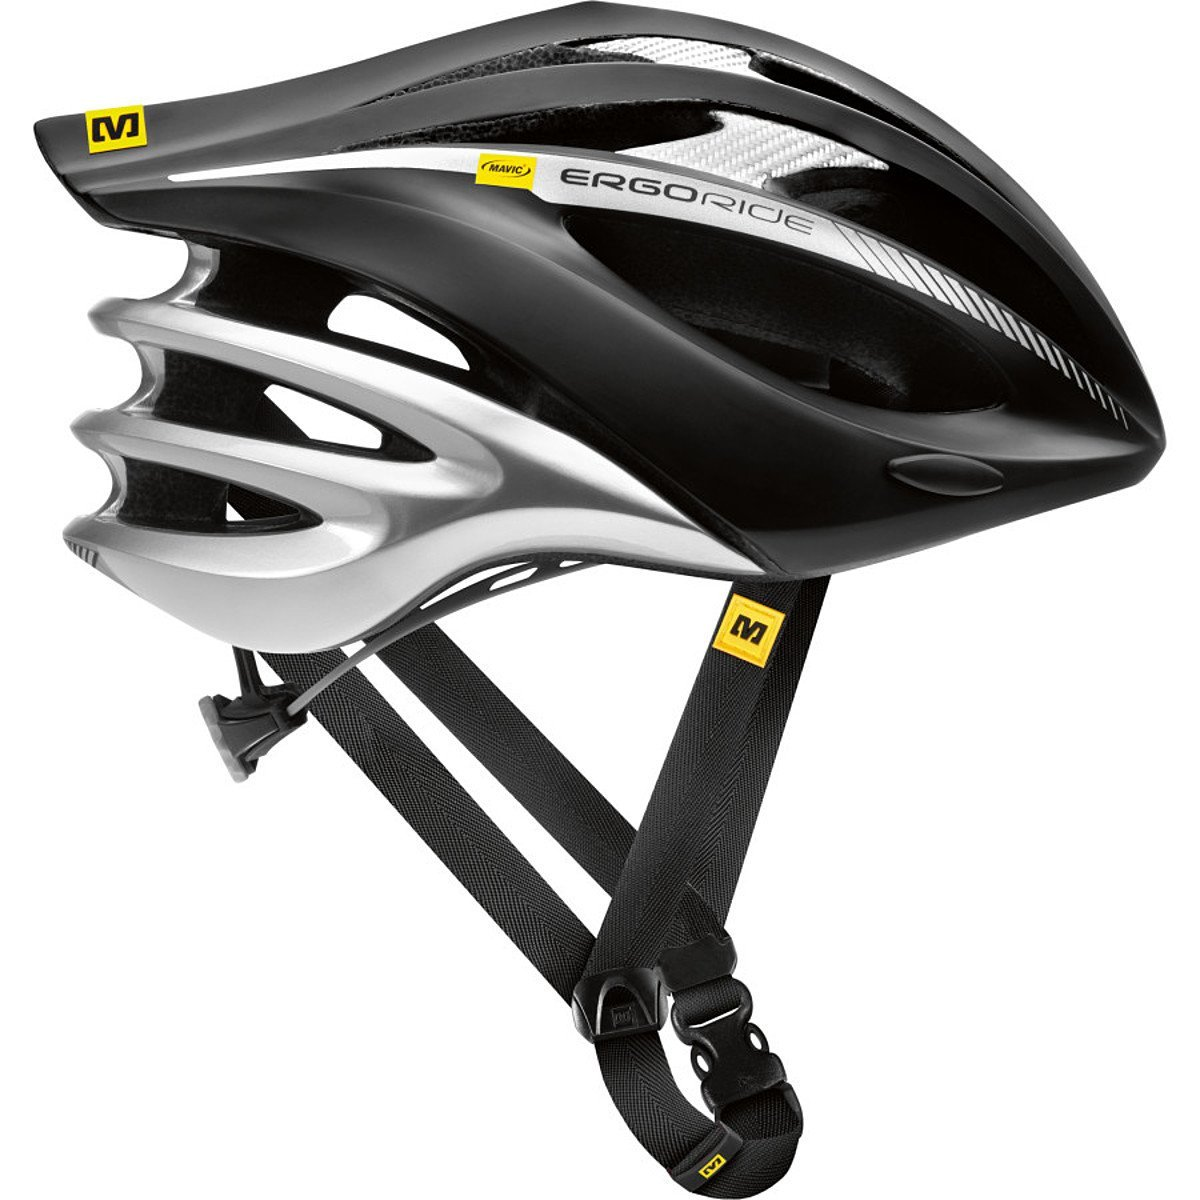 Mavic Bicycle Helmets